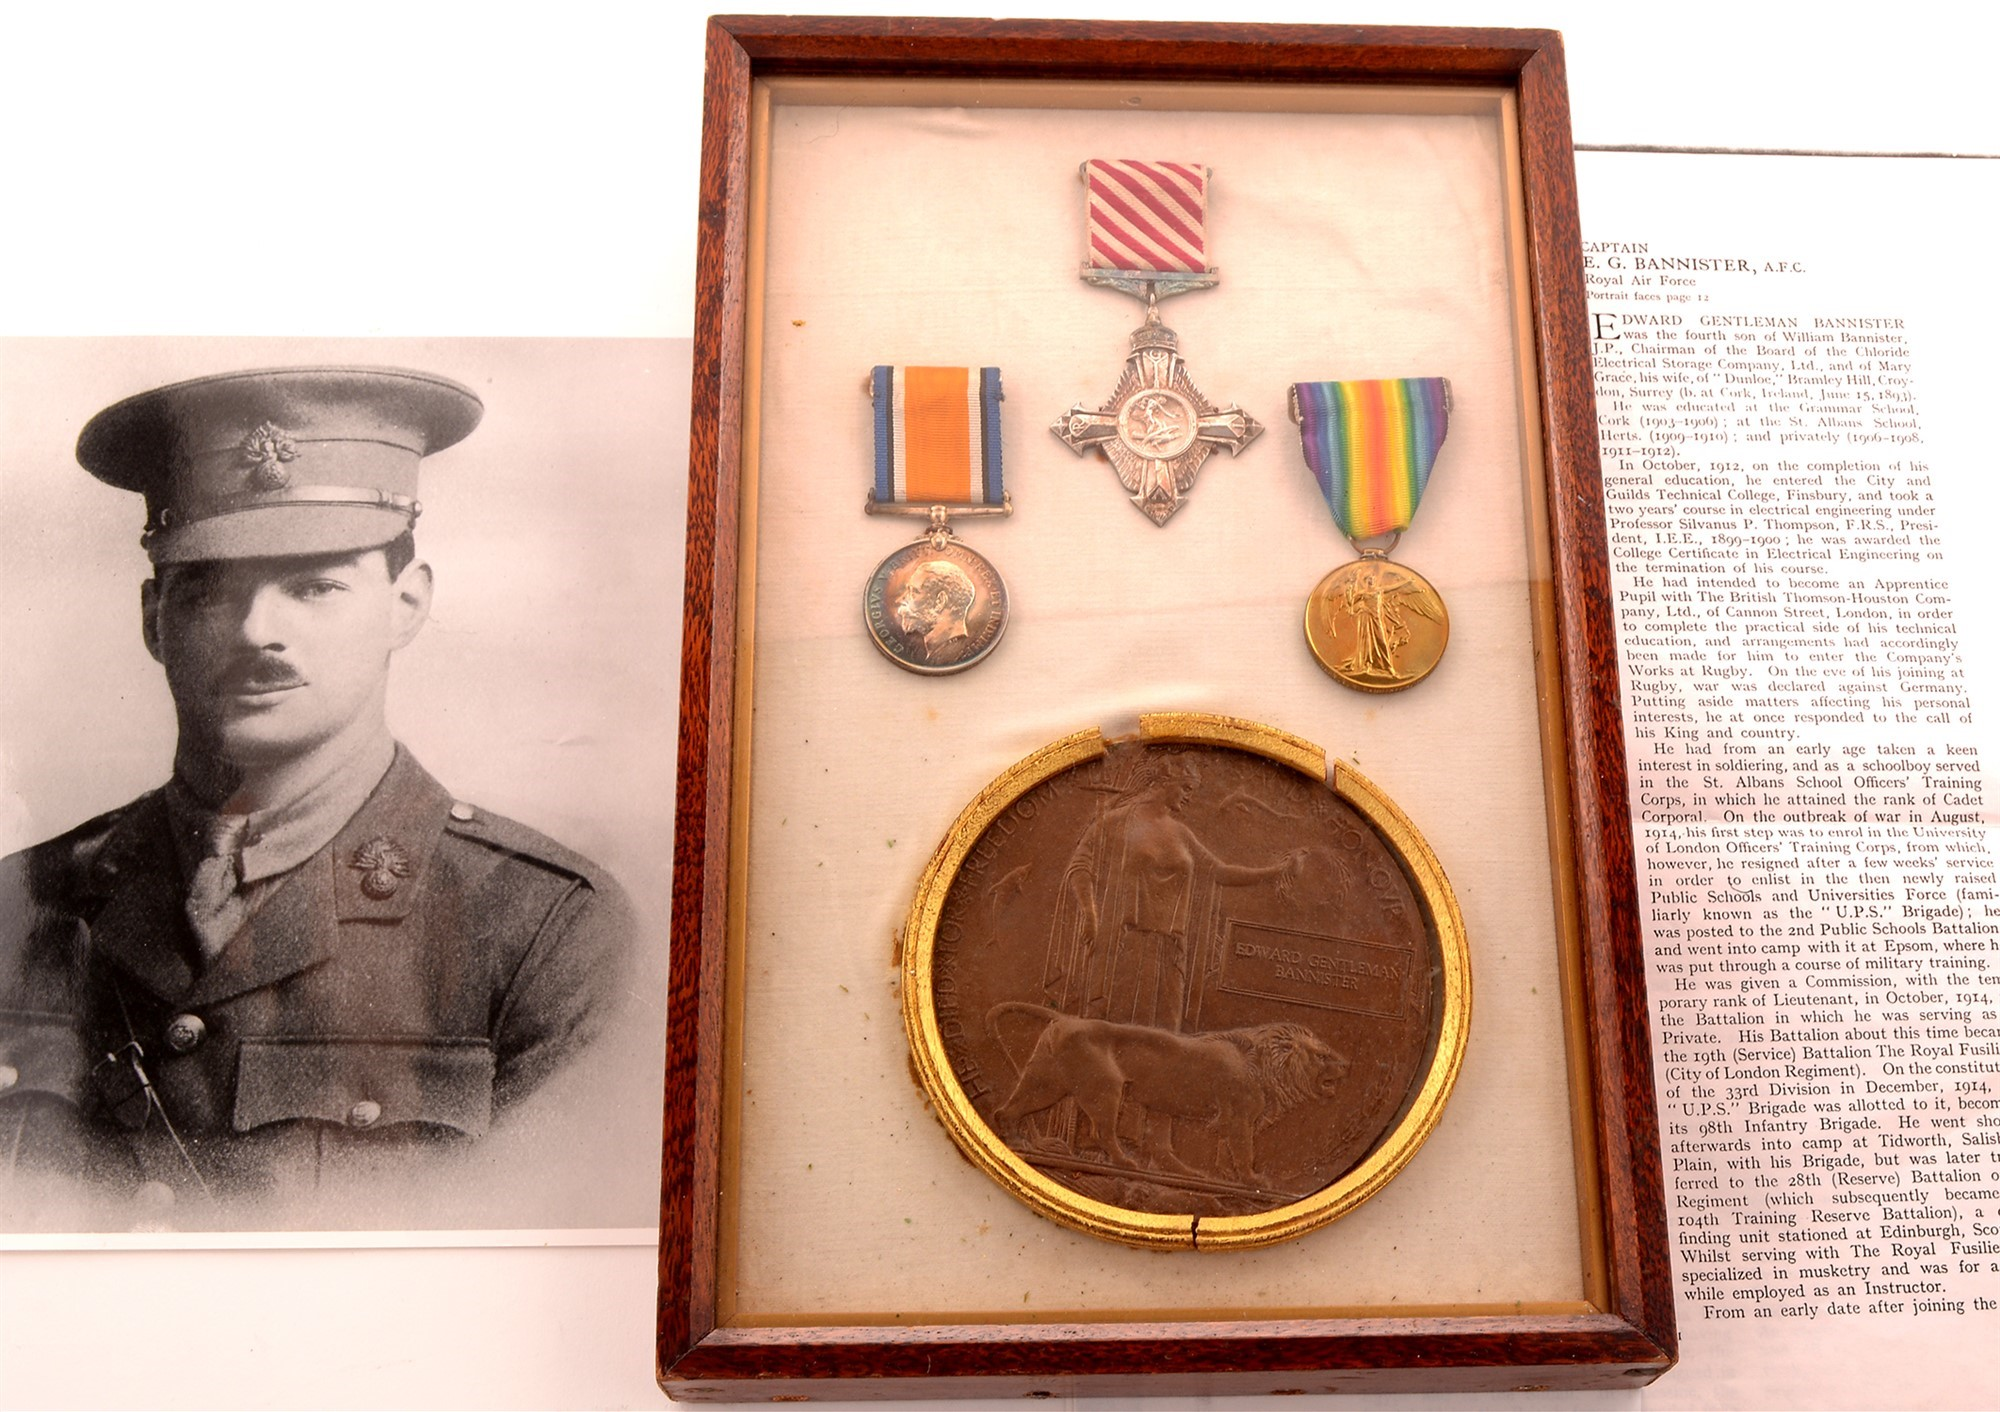 The Medal Auction, including the David Mabon Collection